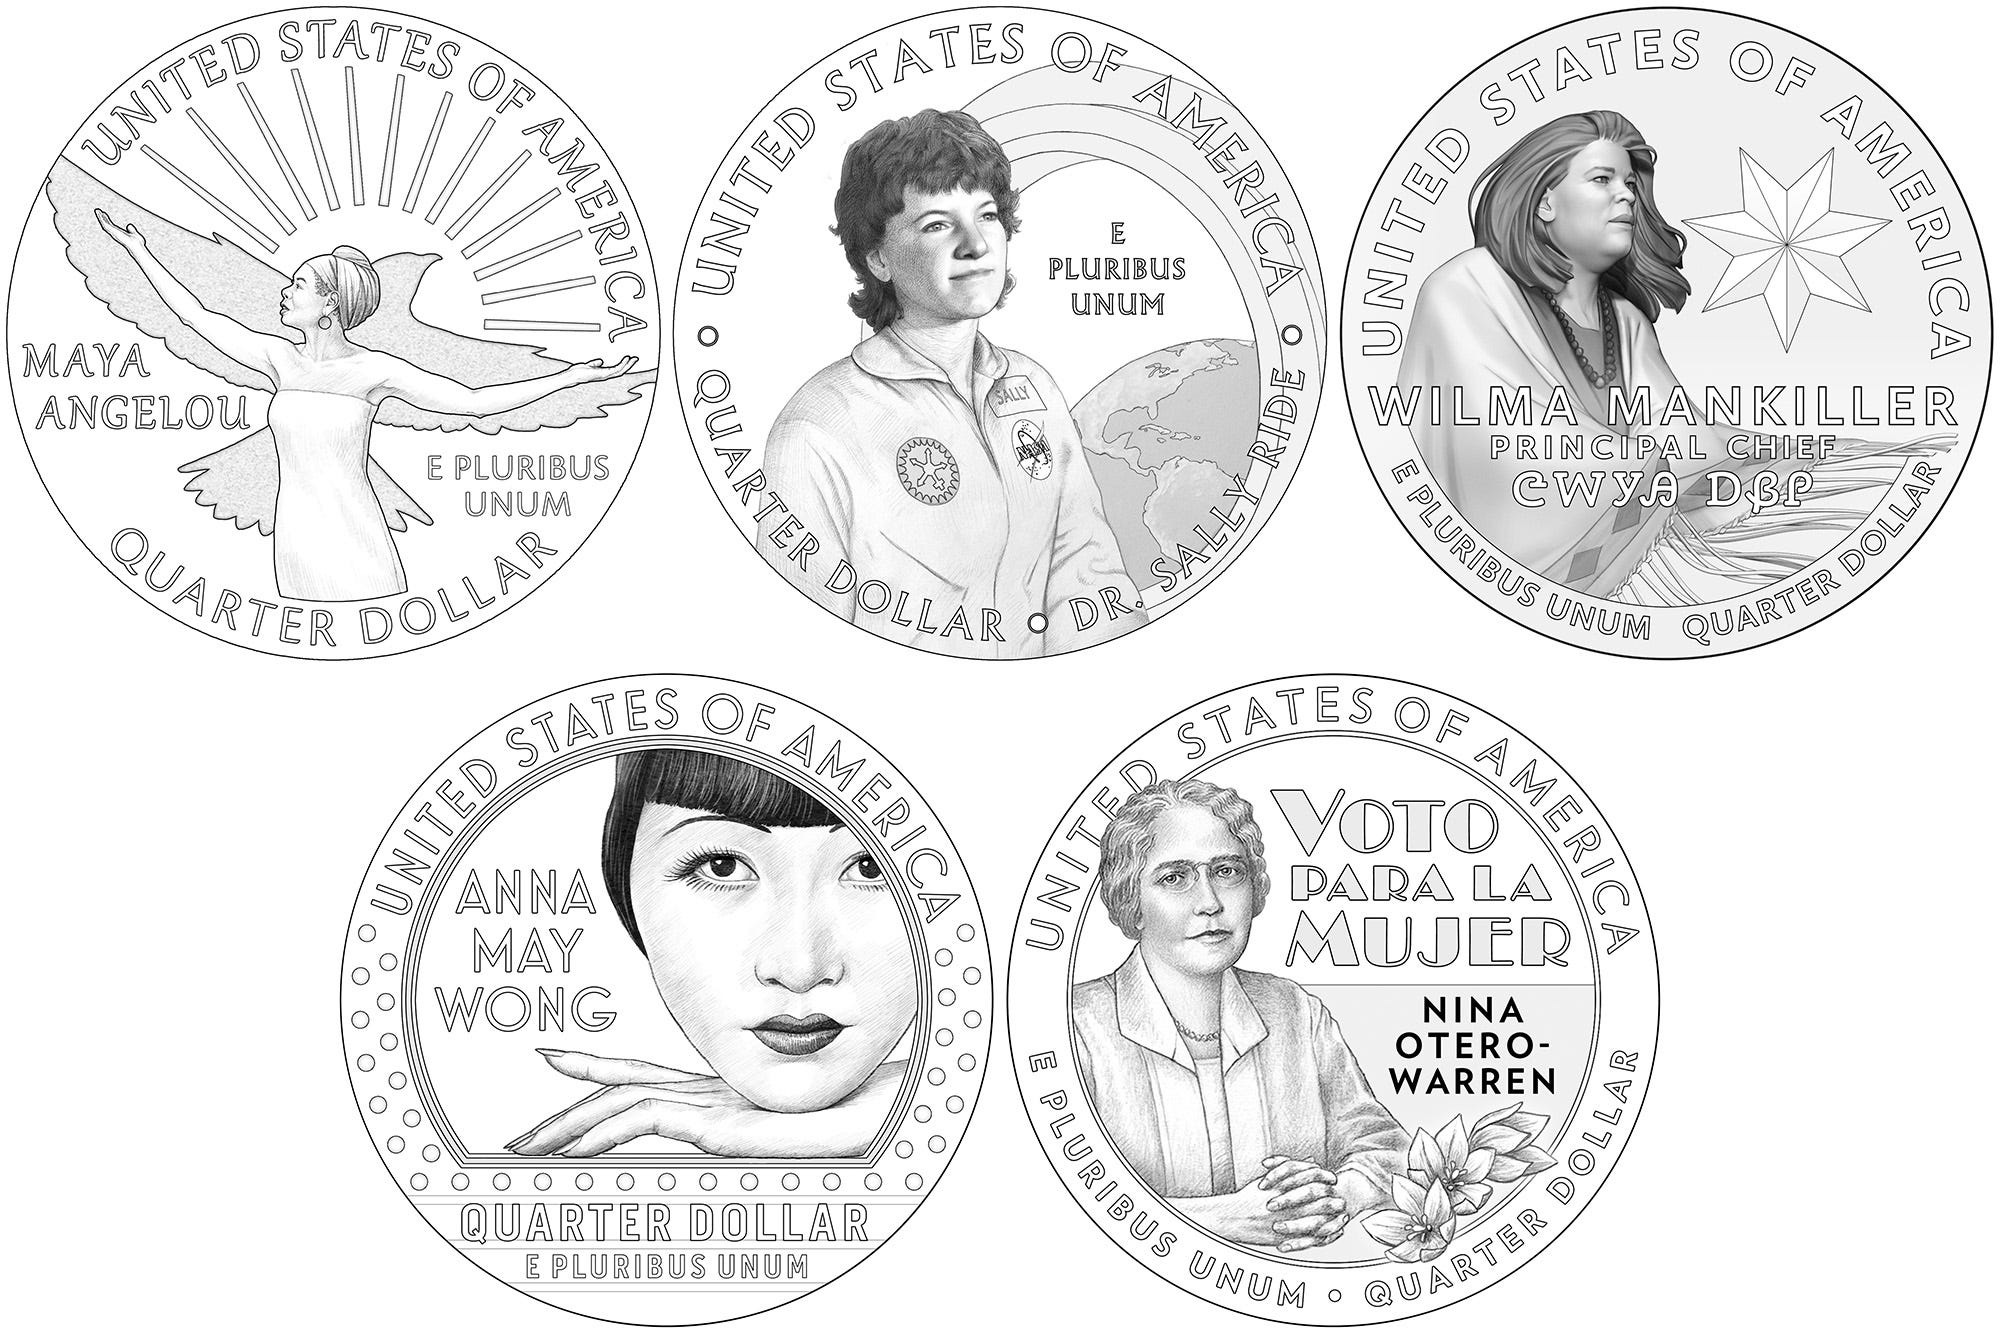 See the 2022 quarters that will feature trailblazing American women